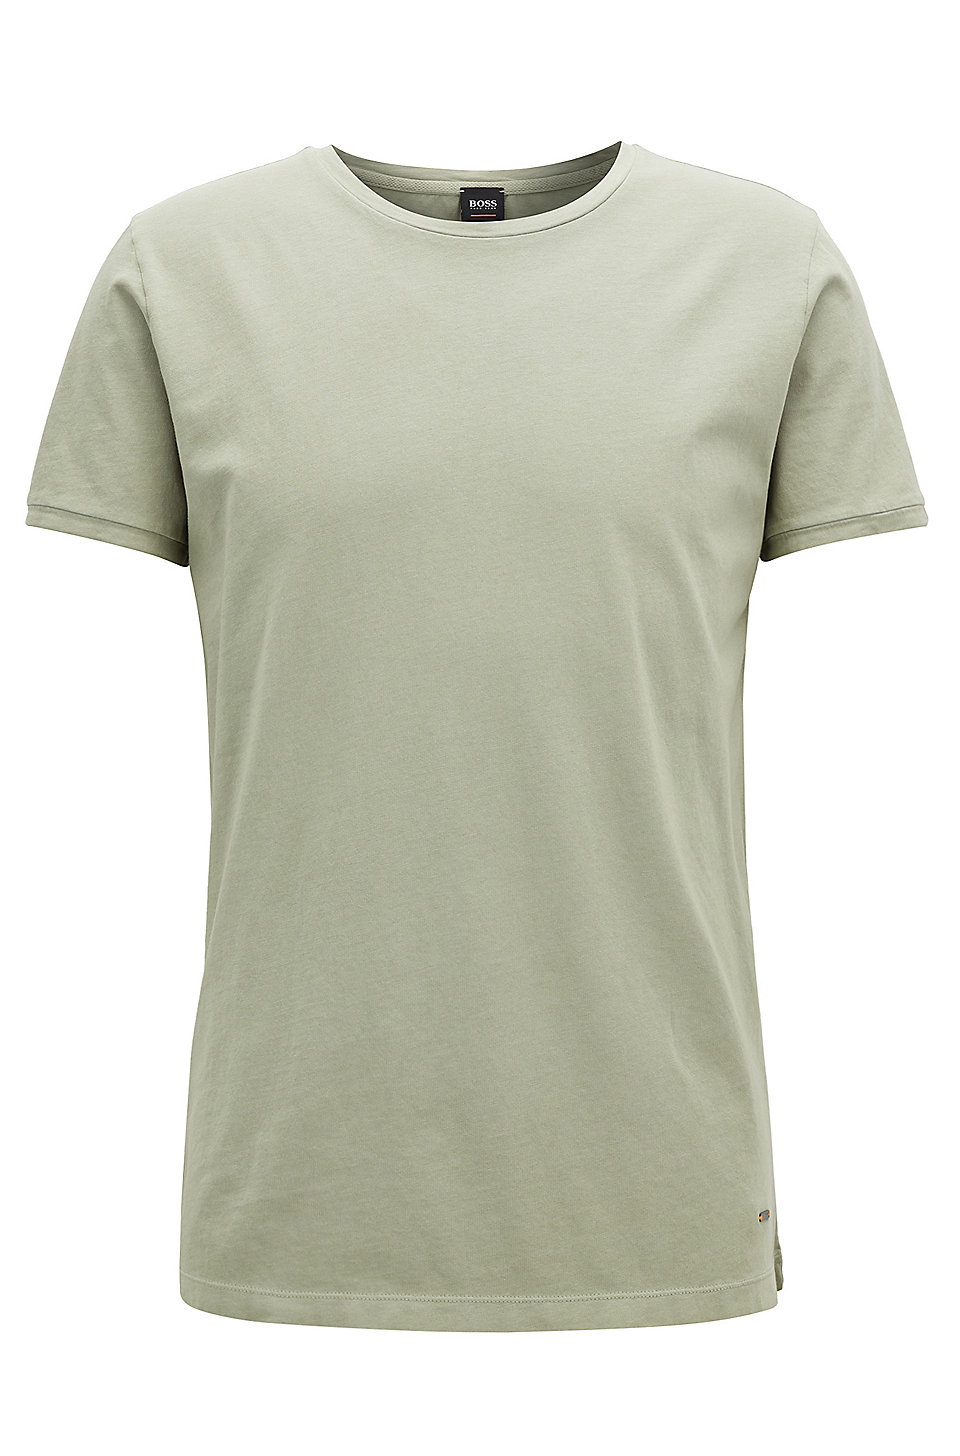 73e68d68 BOSS - Regular-fit garment-dyed T-shirt in cotton